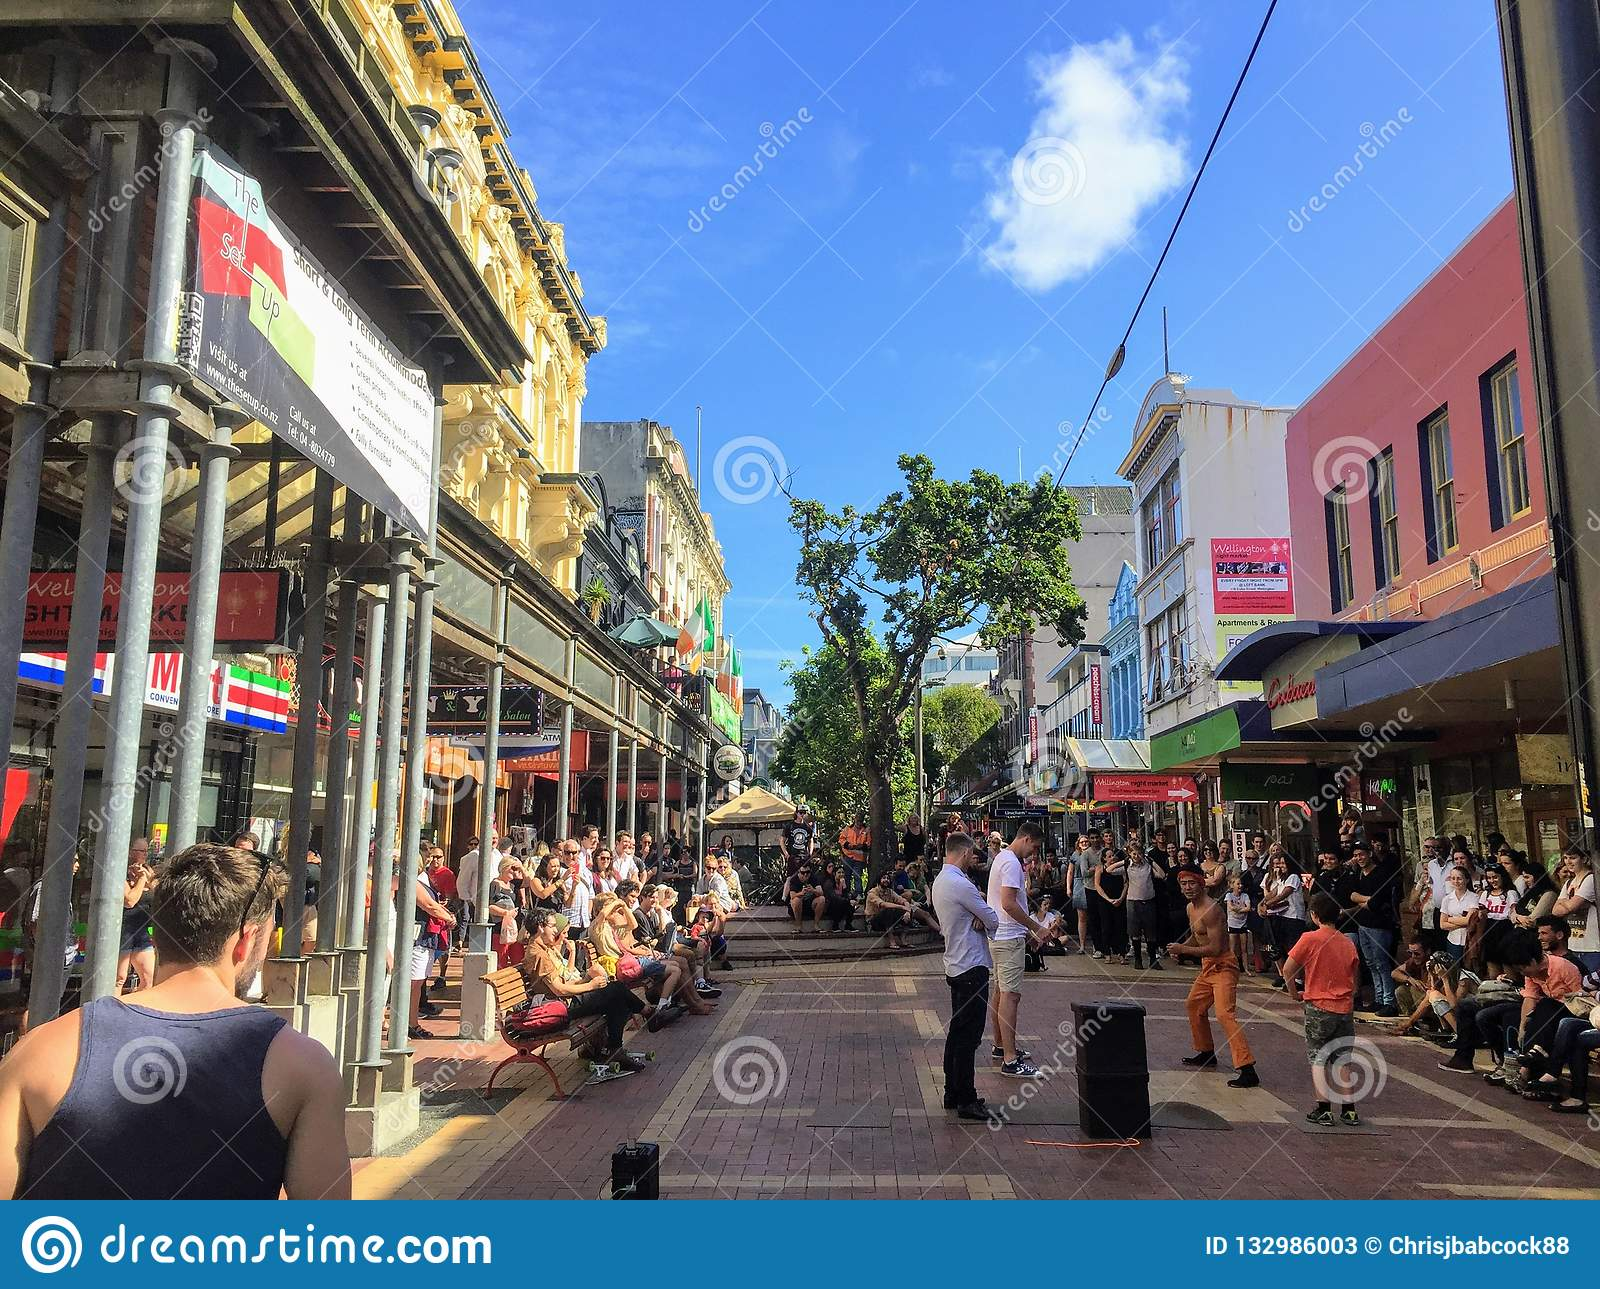 A packed crowd of tourists and locals enjoy a local street performer on Cuba street in downtown Wellington.